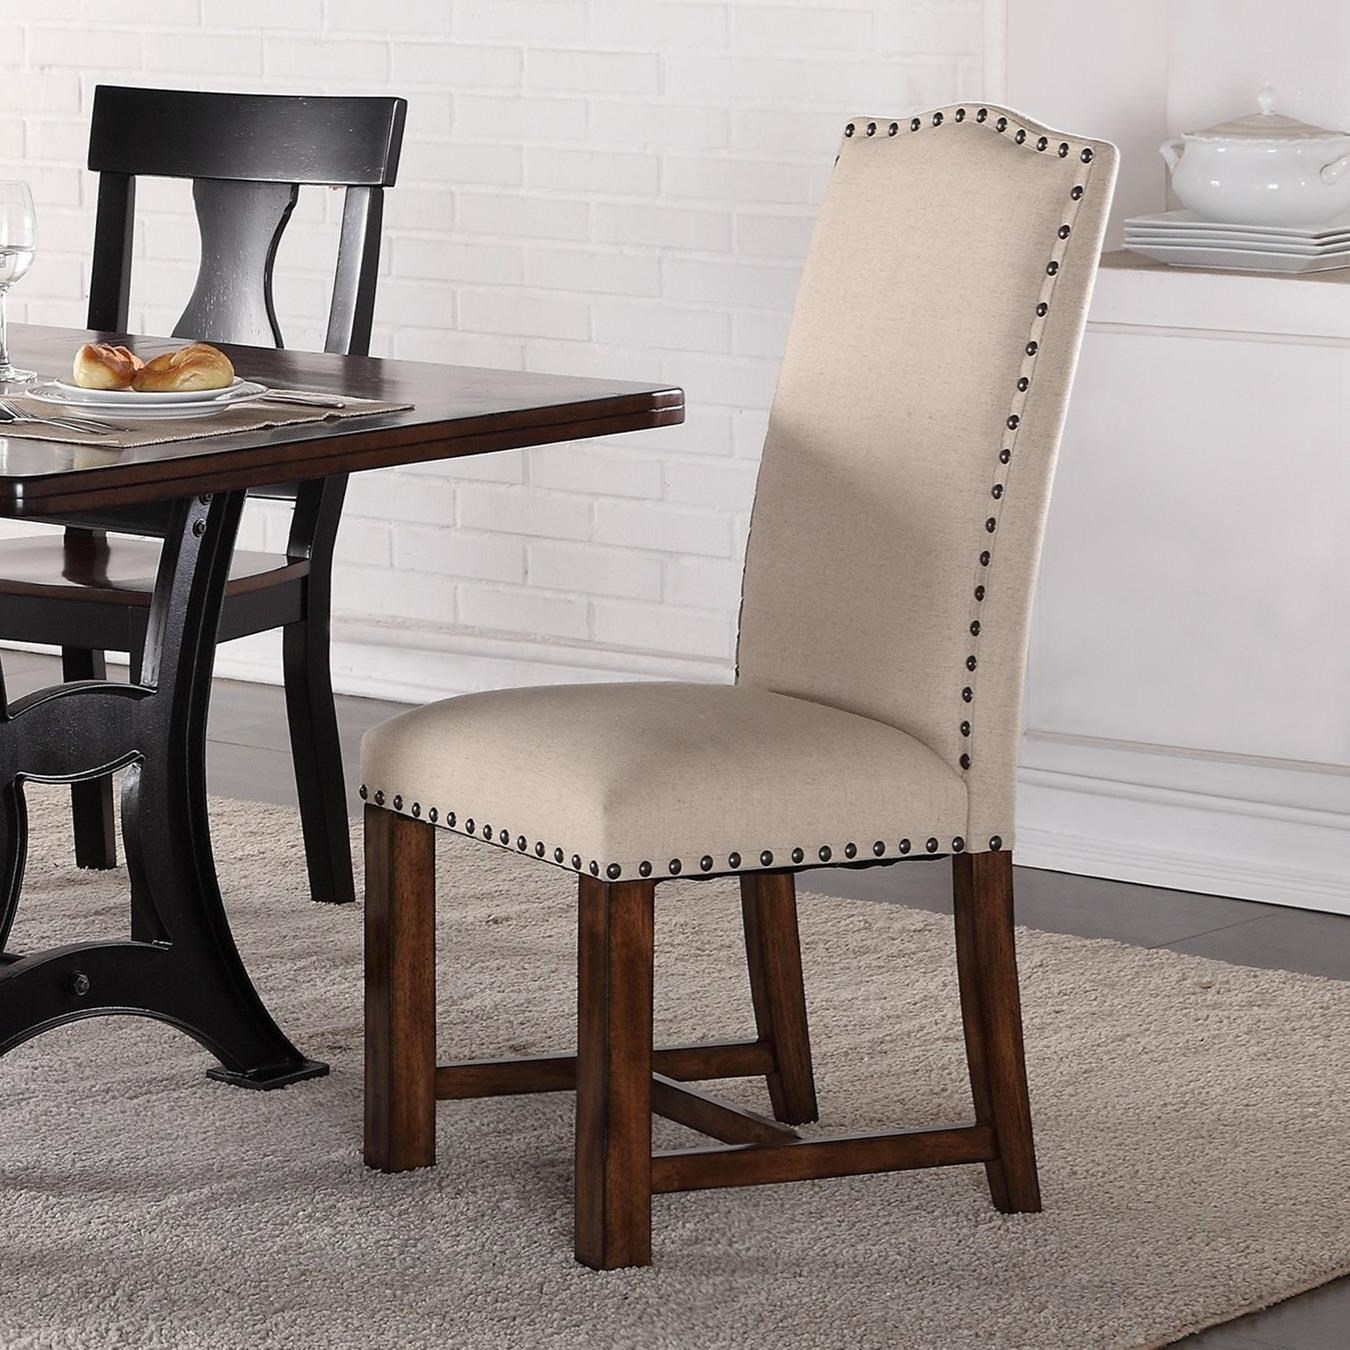 Ordinaire Crown Mark Astor Upholstered Parson Chair With Nailhead Trim